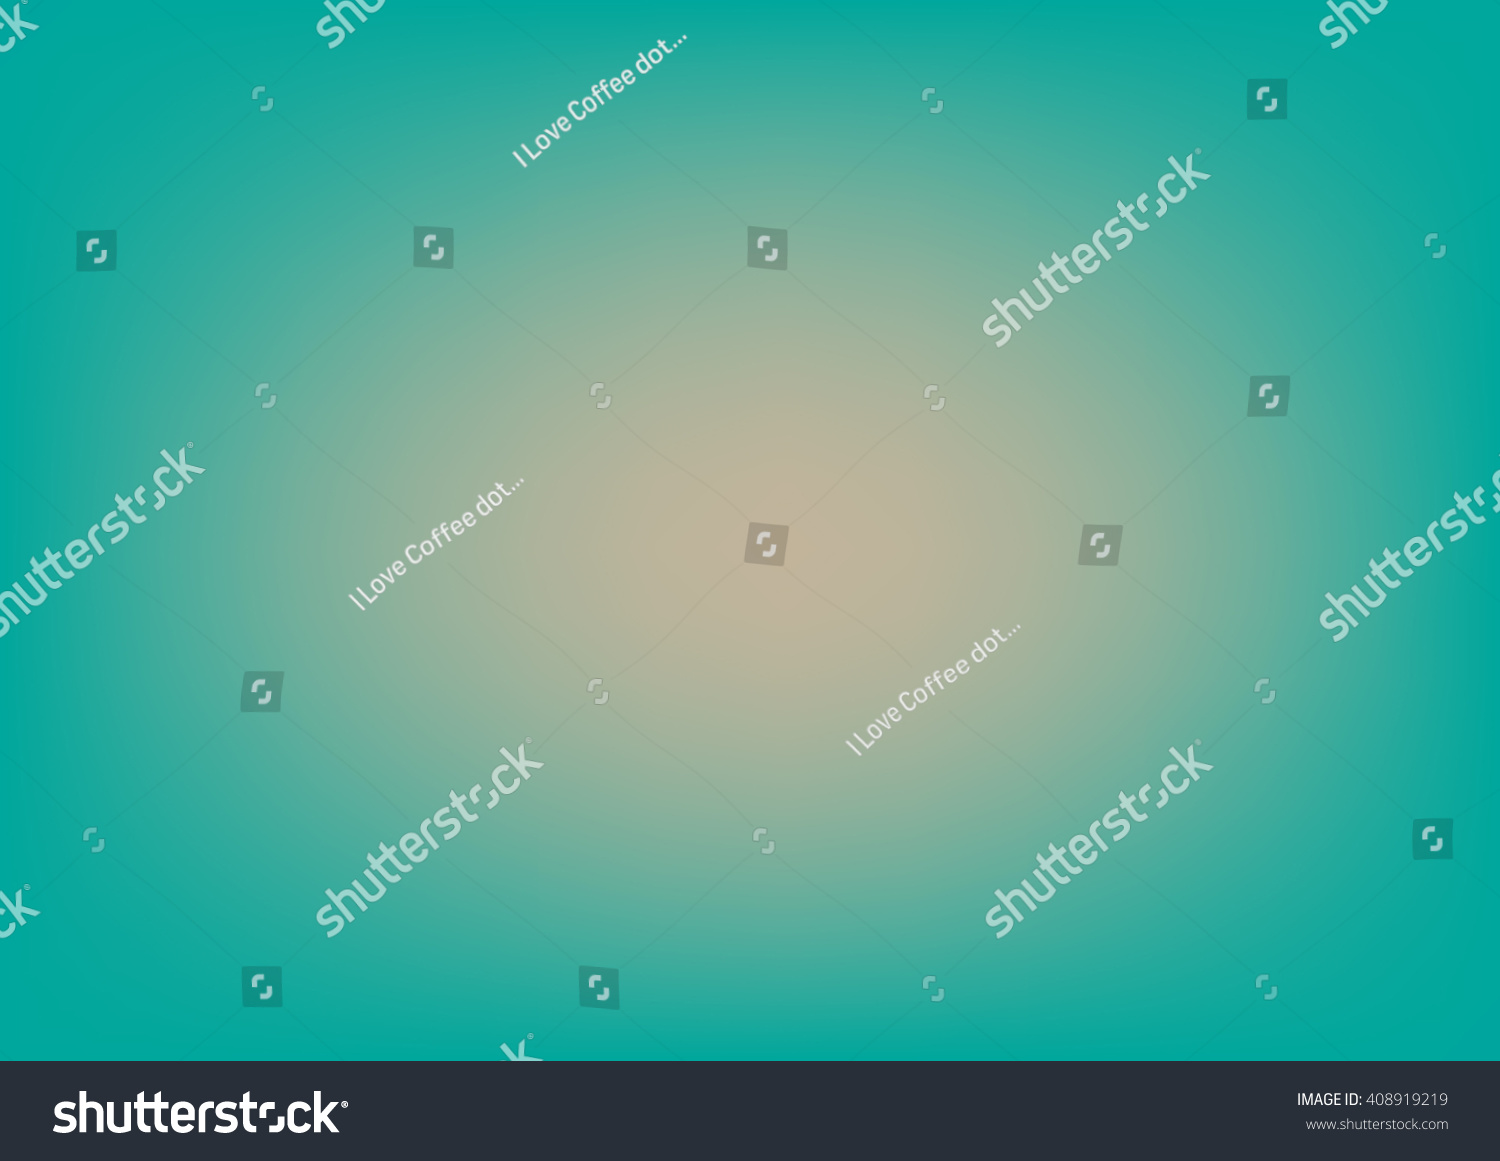 website colors neon : Abstract Blurred Background With Neon Pleasant Colors Abstract Green Blurred Background Smooth Gradient Texture Color Glowing Website Pattern